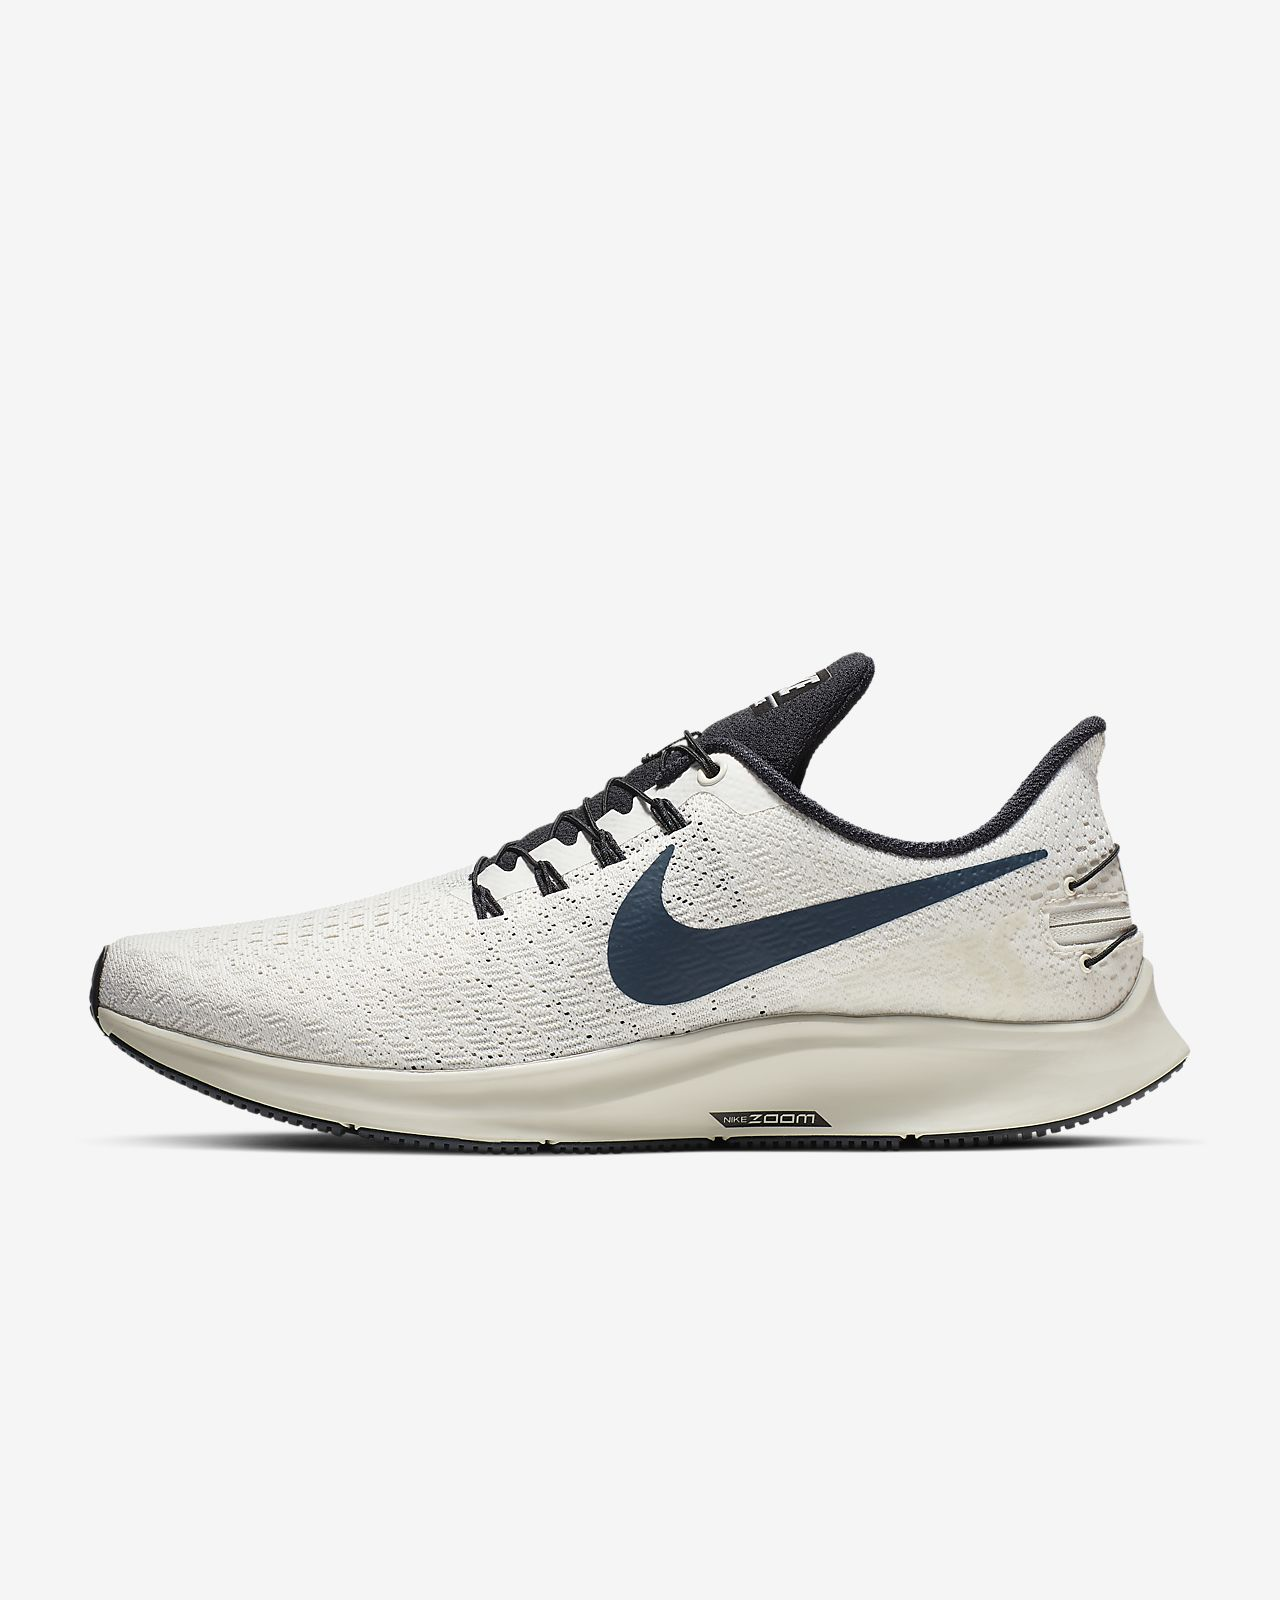 658d72a272b2d Nike Air Zoom Pegasus 35 FlyEase Men s Running Shoe. Nike.com